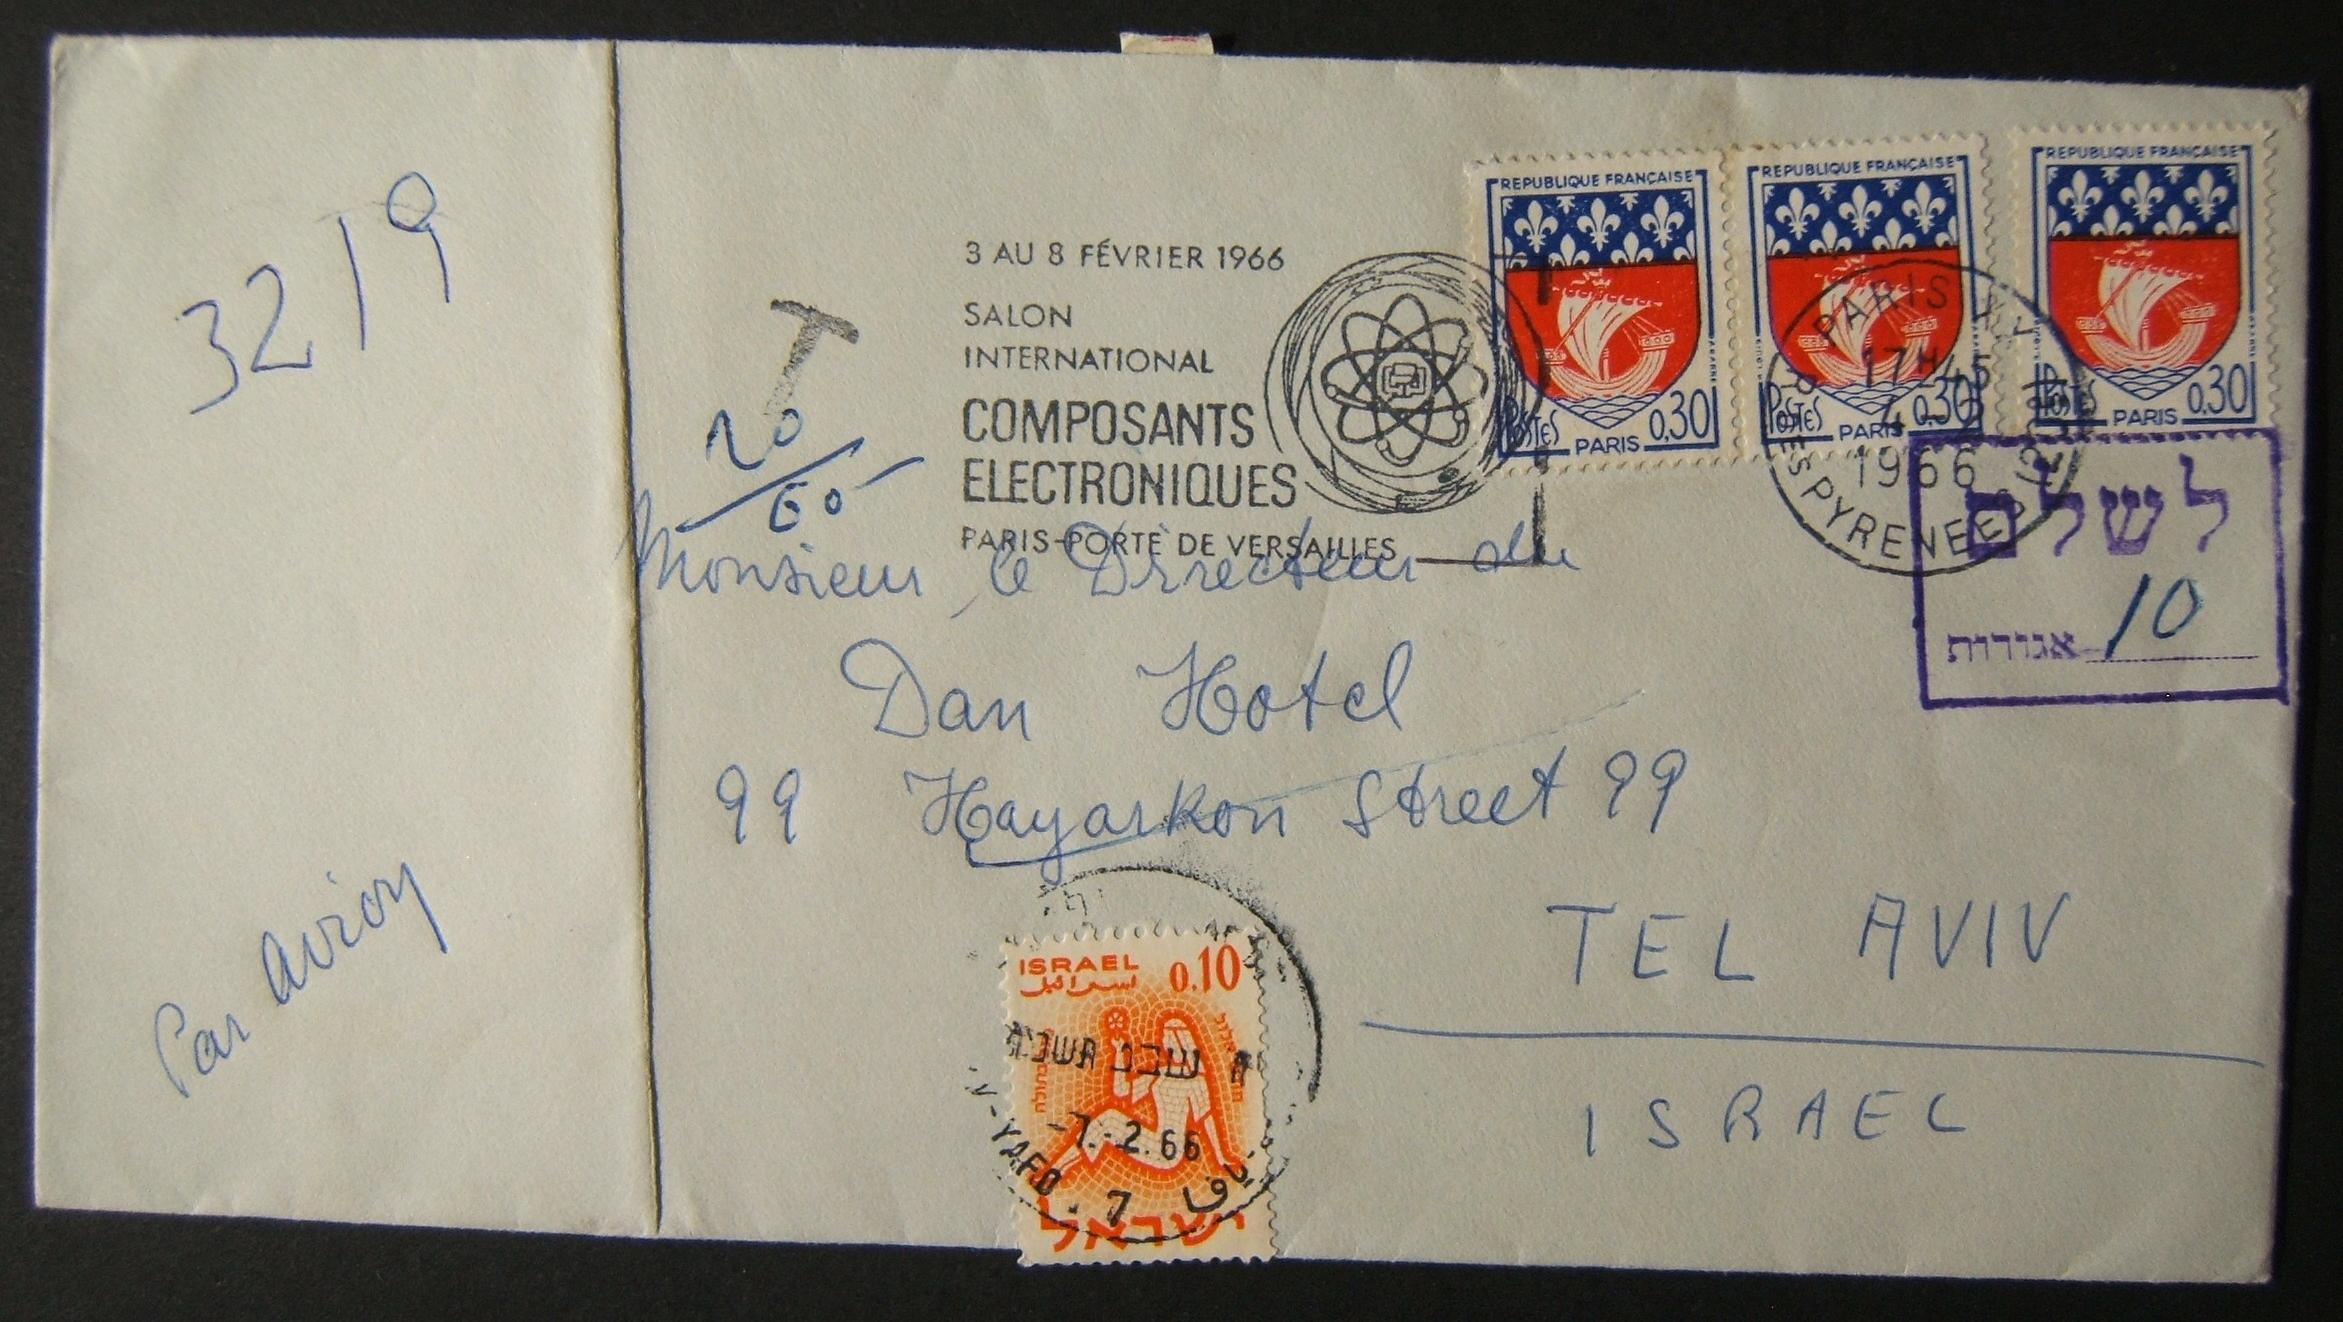 1966 incoming French taxed mail: 4-2-1966 airmail cover ex PARIS to TLV underfranked at 0.90Fr; taxed 0.10L in Israel, paid 7-2-66 using 1961 Zodiac Ba209 frank tied by TLV-7 pmk;